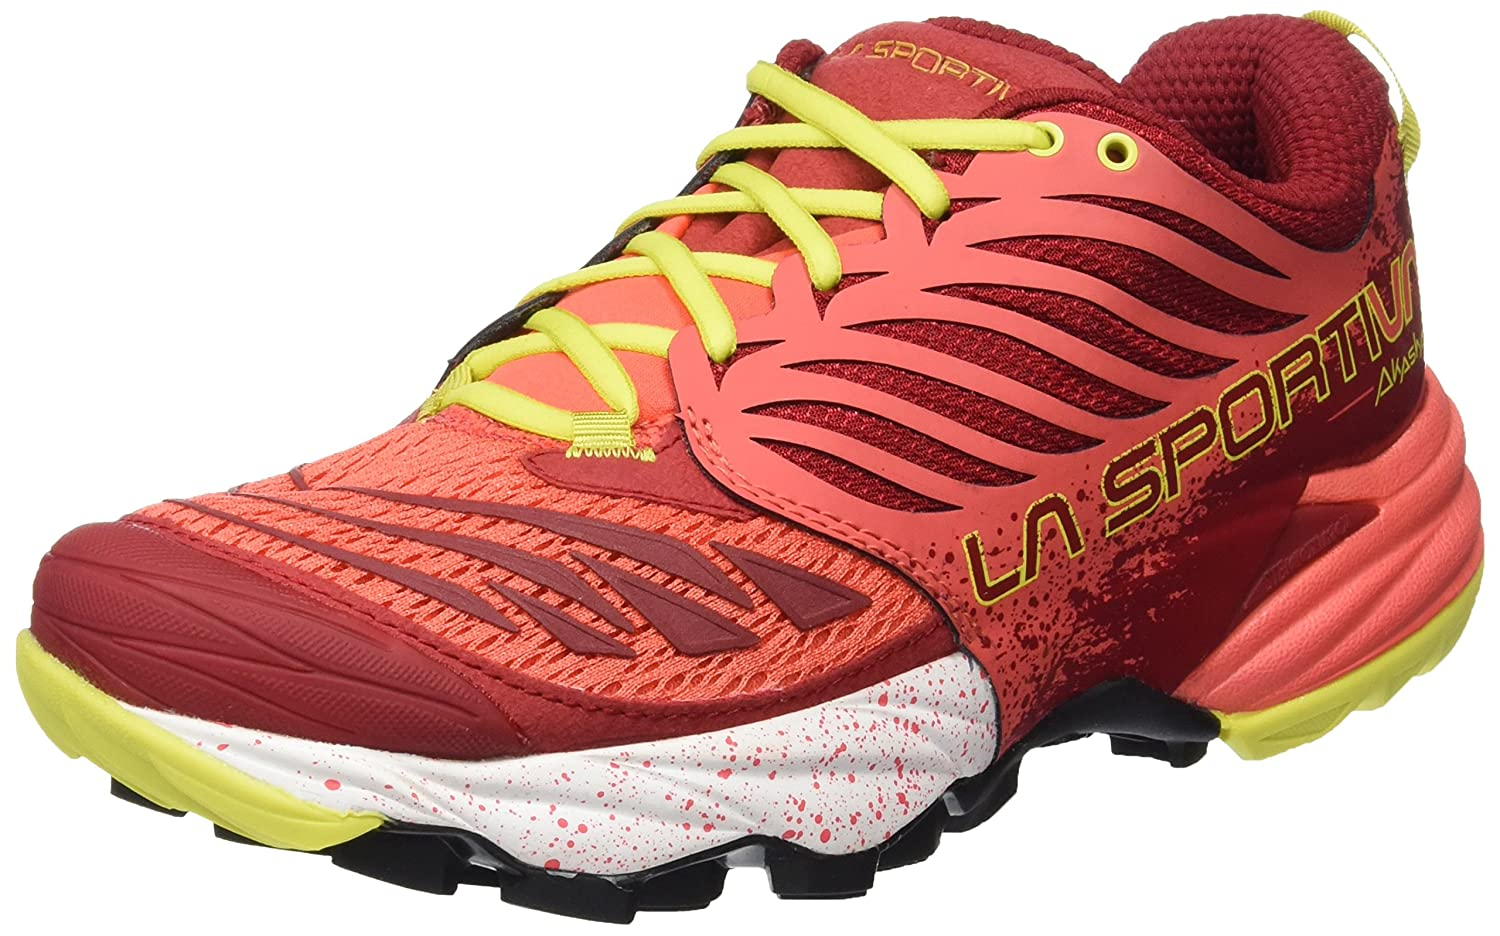 09e36f36675feb La Sportiva Akasha - Shoes for Women